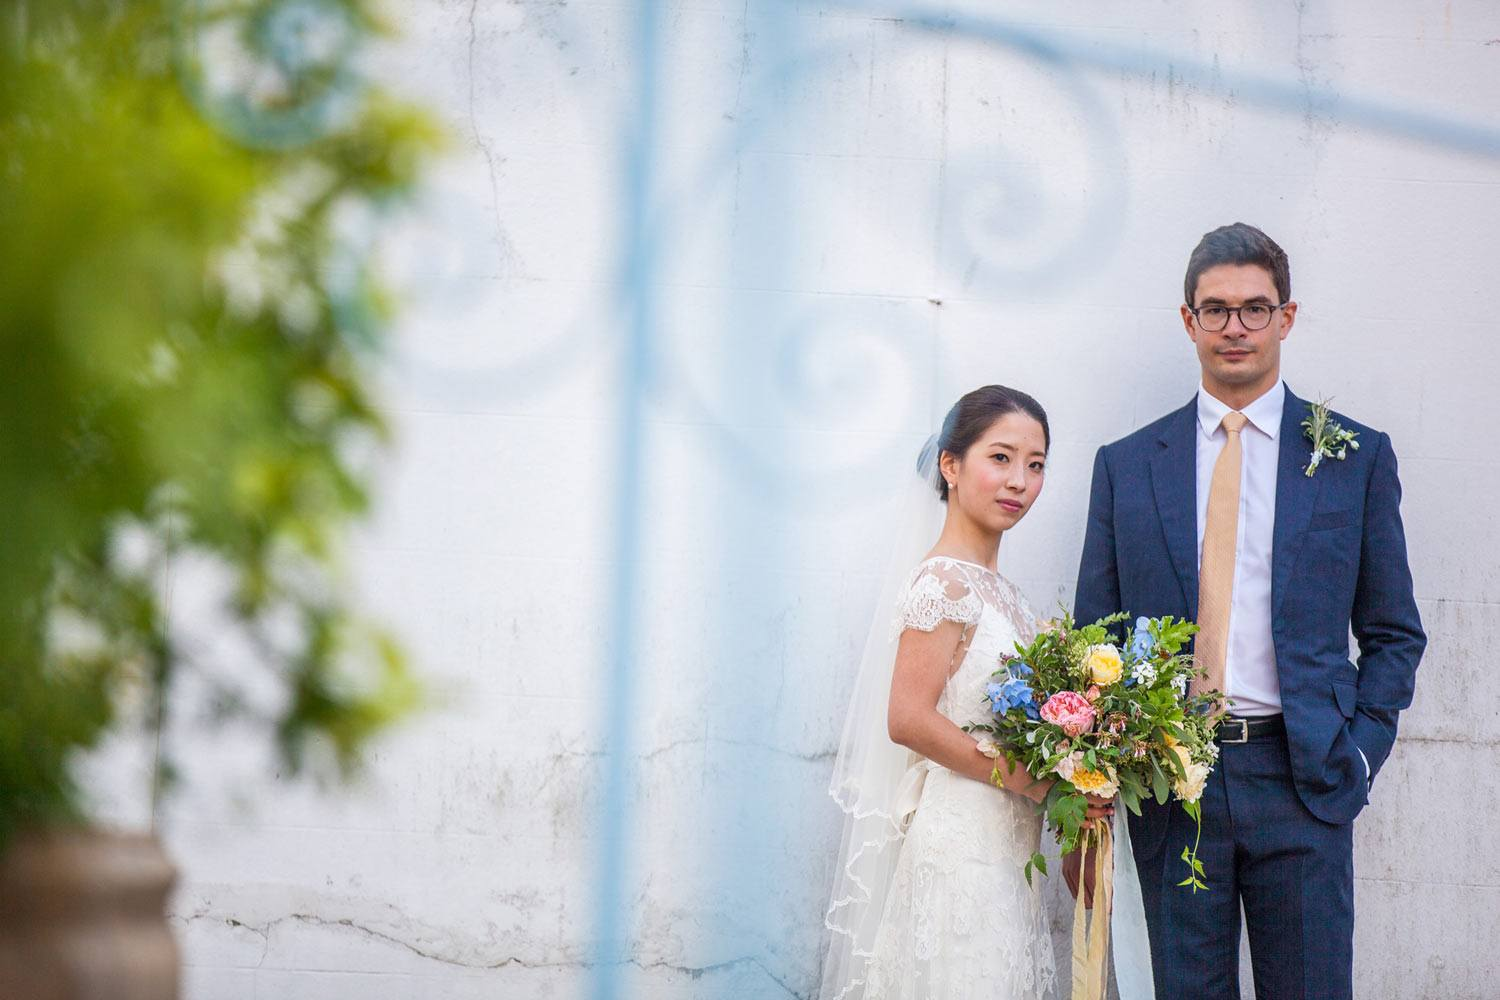 Bride and groom in front of white building with flowers